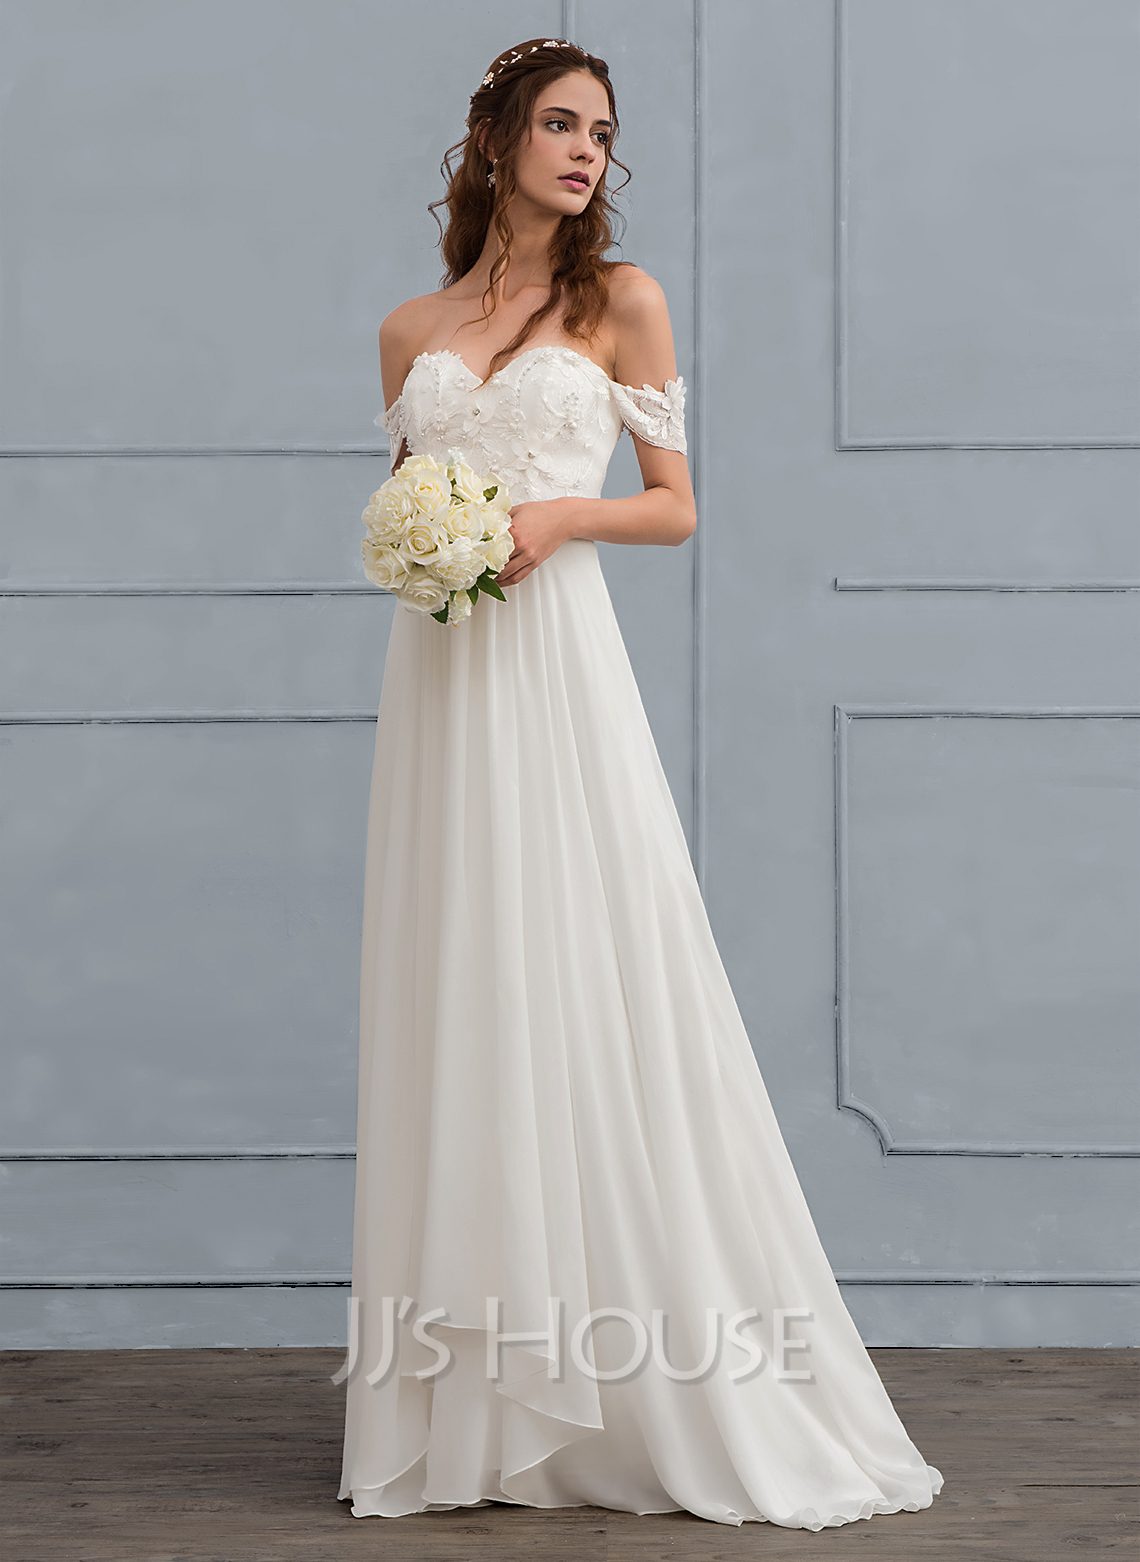 1e20f6ea96 A-Line Princess Off-the-Shoulder Sweep Train Chiffon Wedding Dress With.  Loading zoom